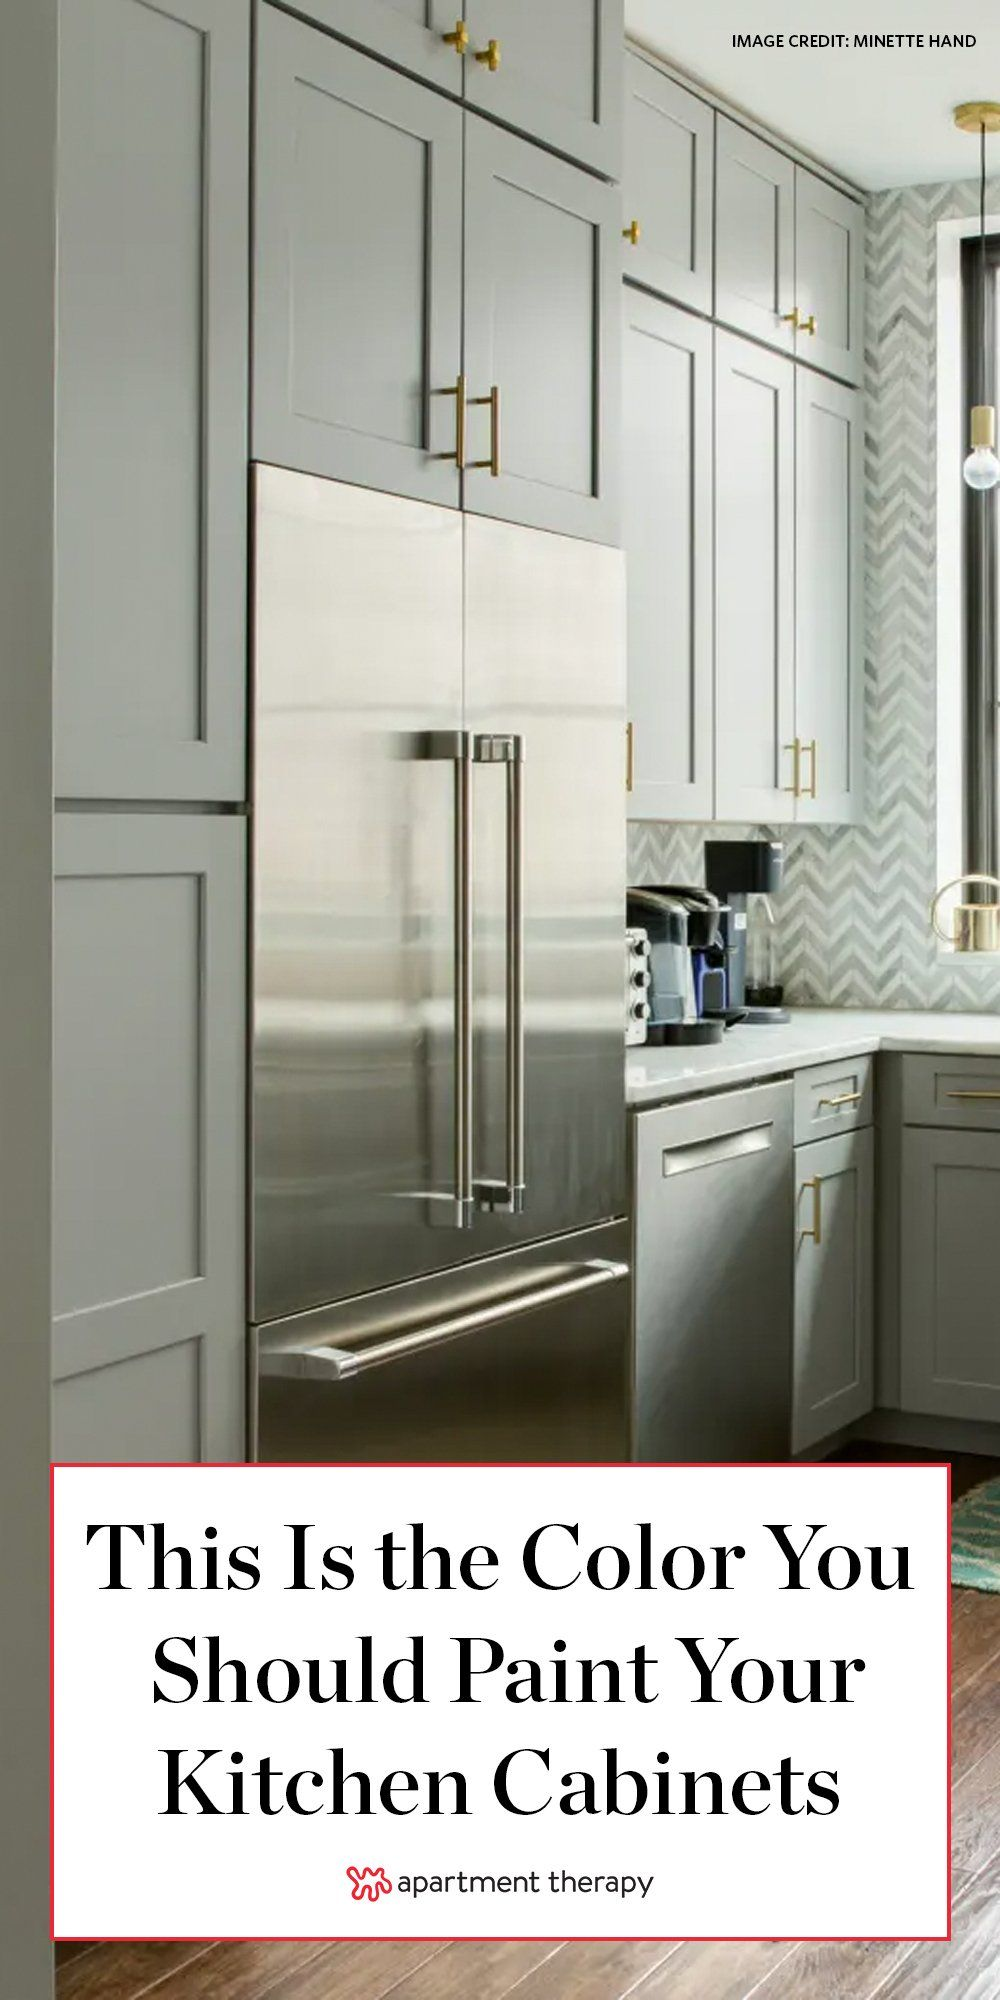 What Is The Color Trend For Kitchen Cabinets